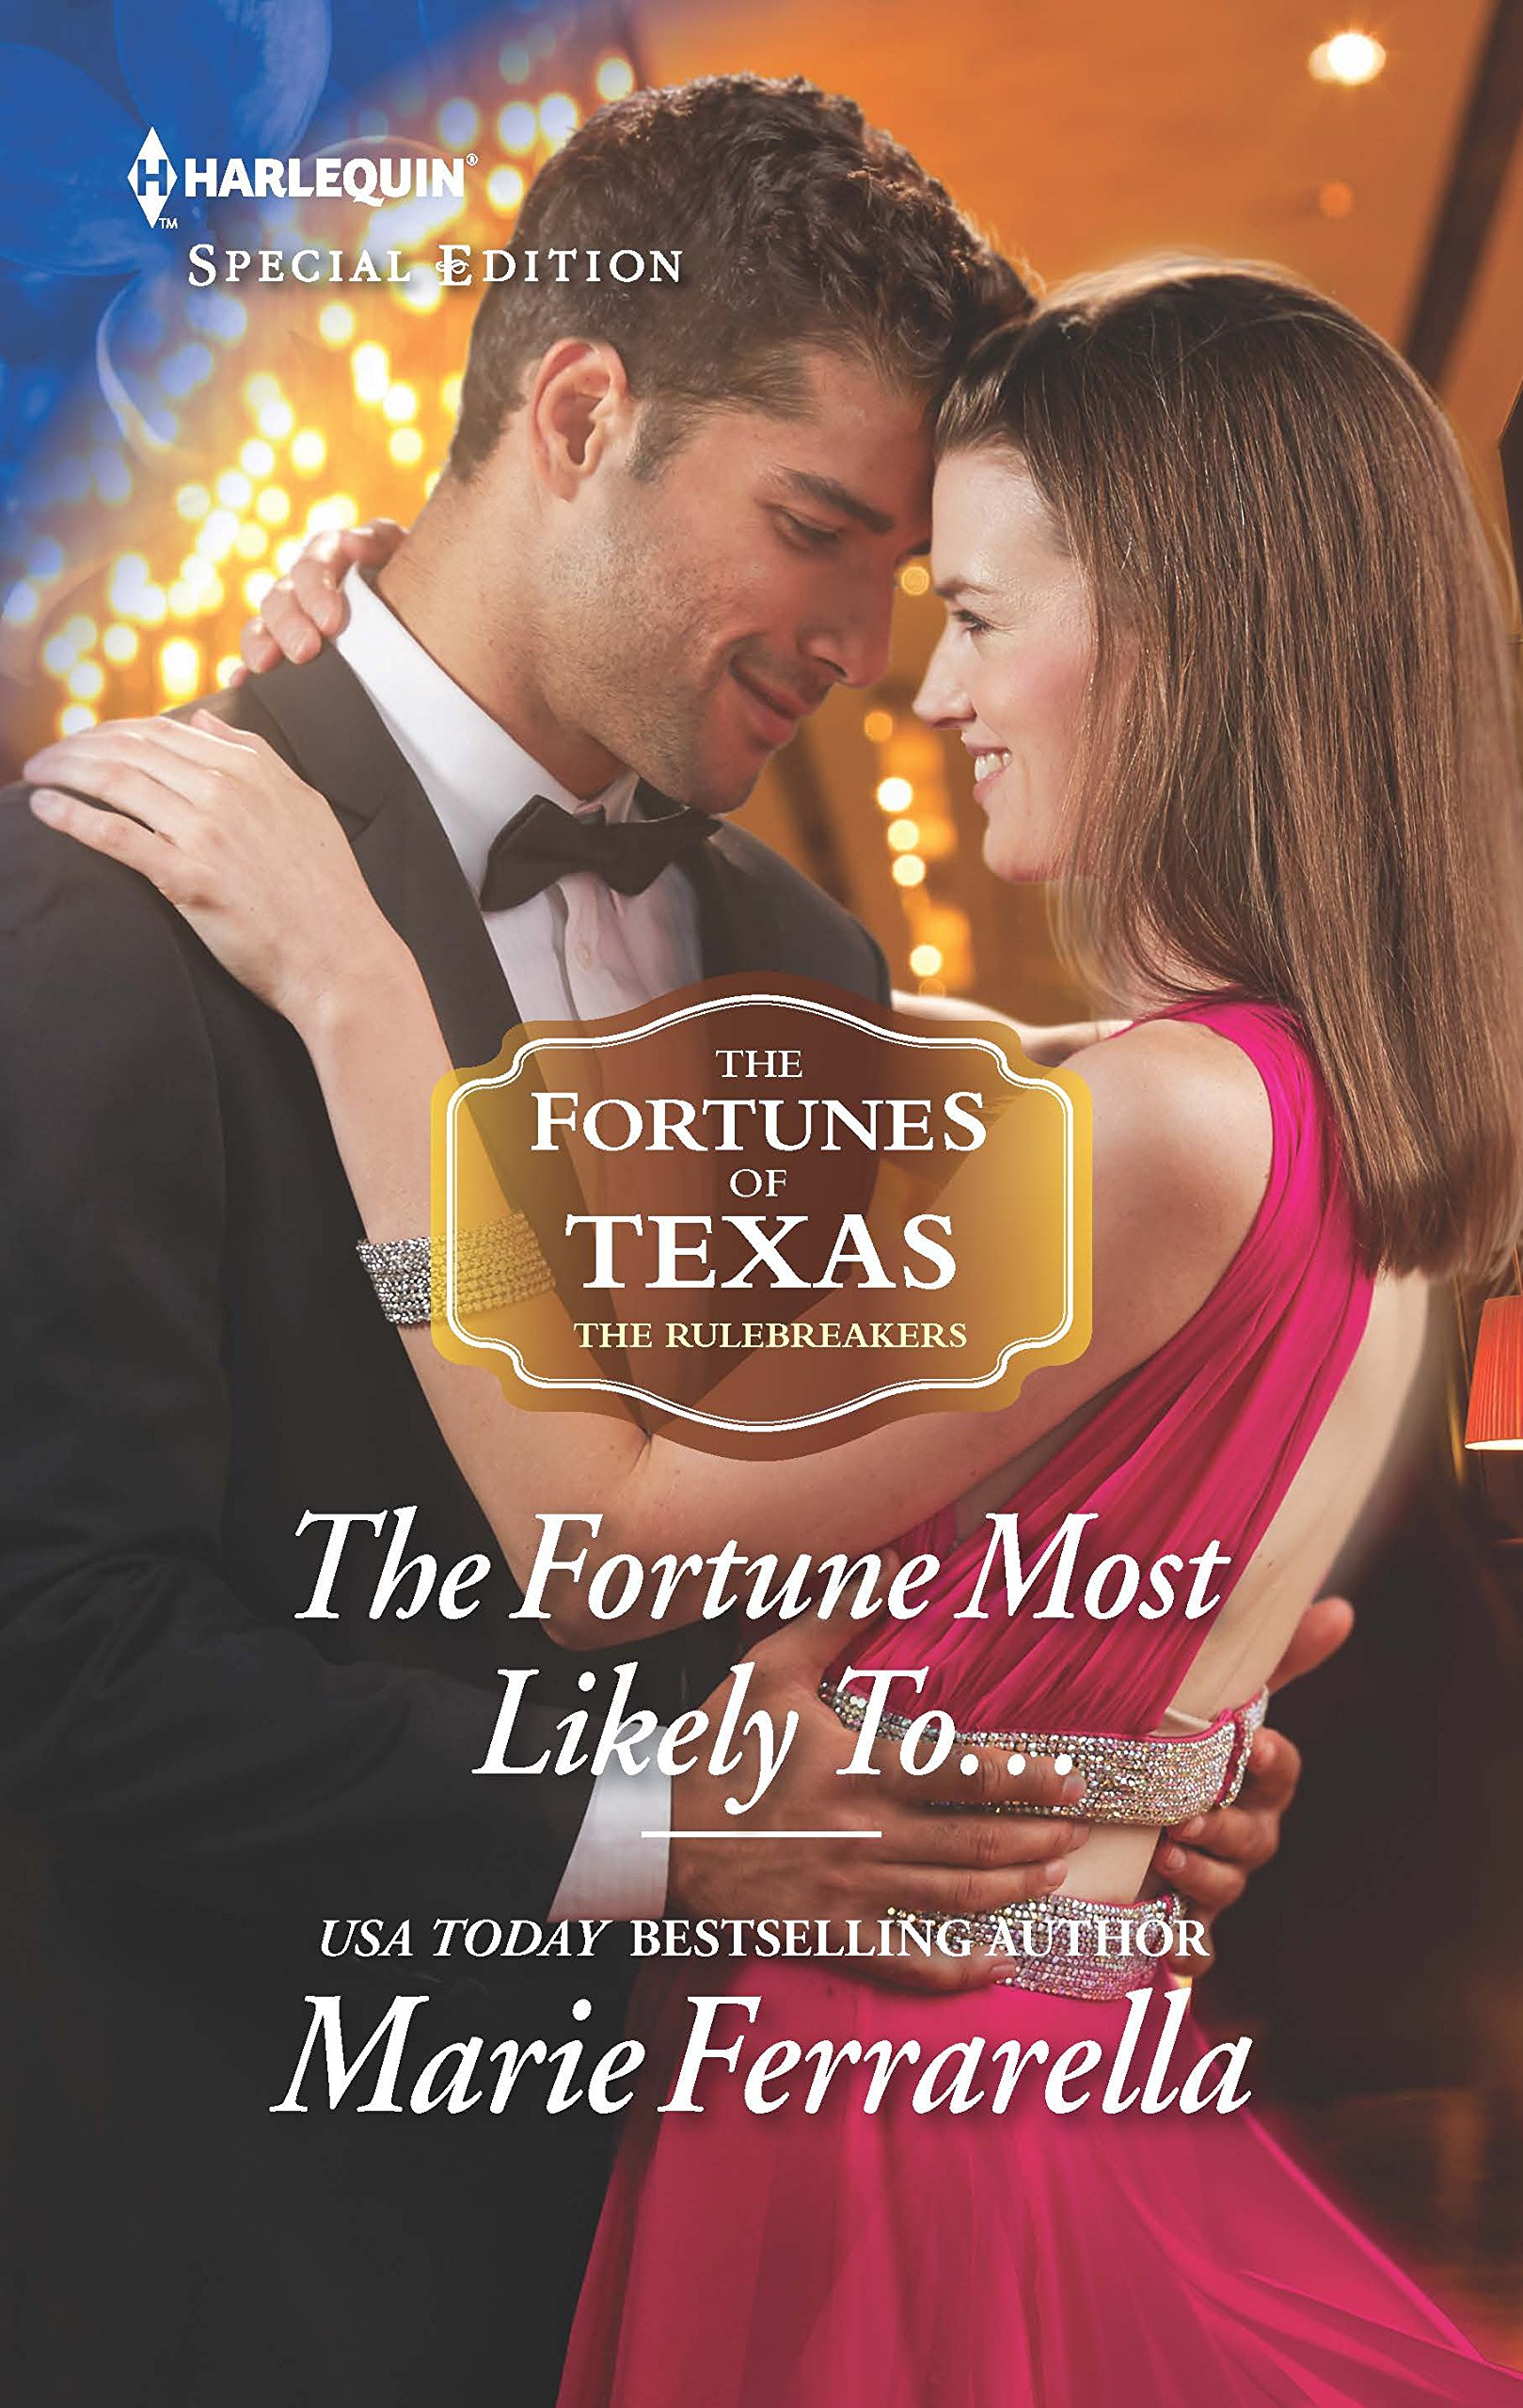 Download The Fortune Most Likely To... (The Fortunes of Texas: The Rulebreakers) pdf epub